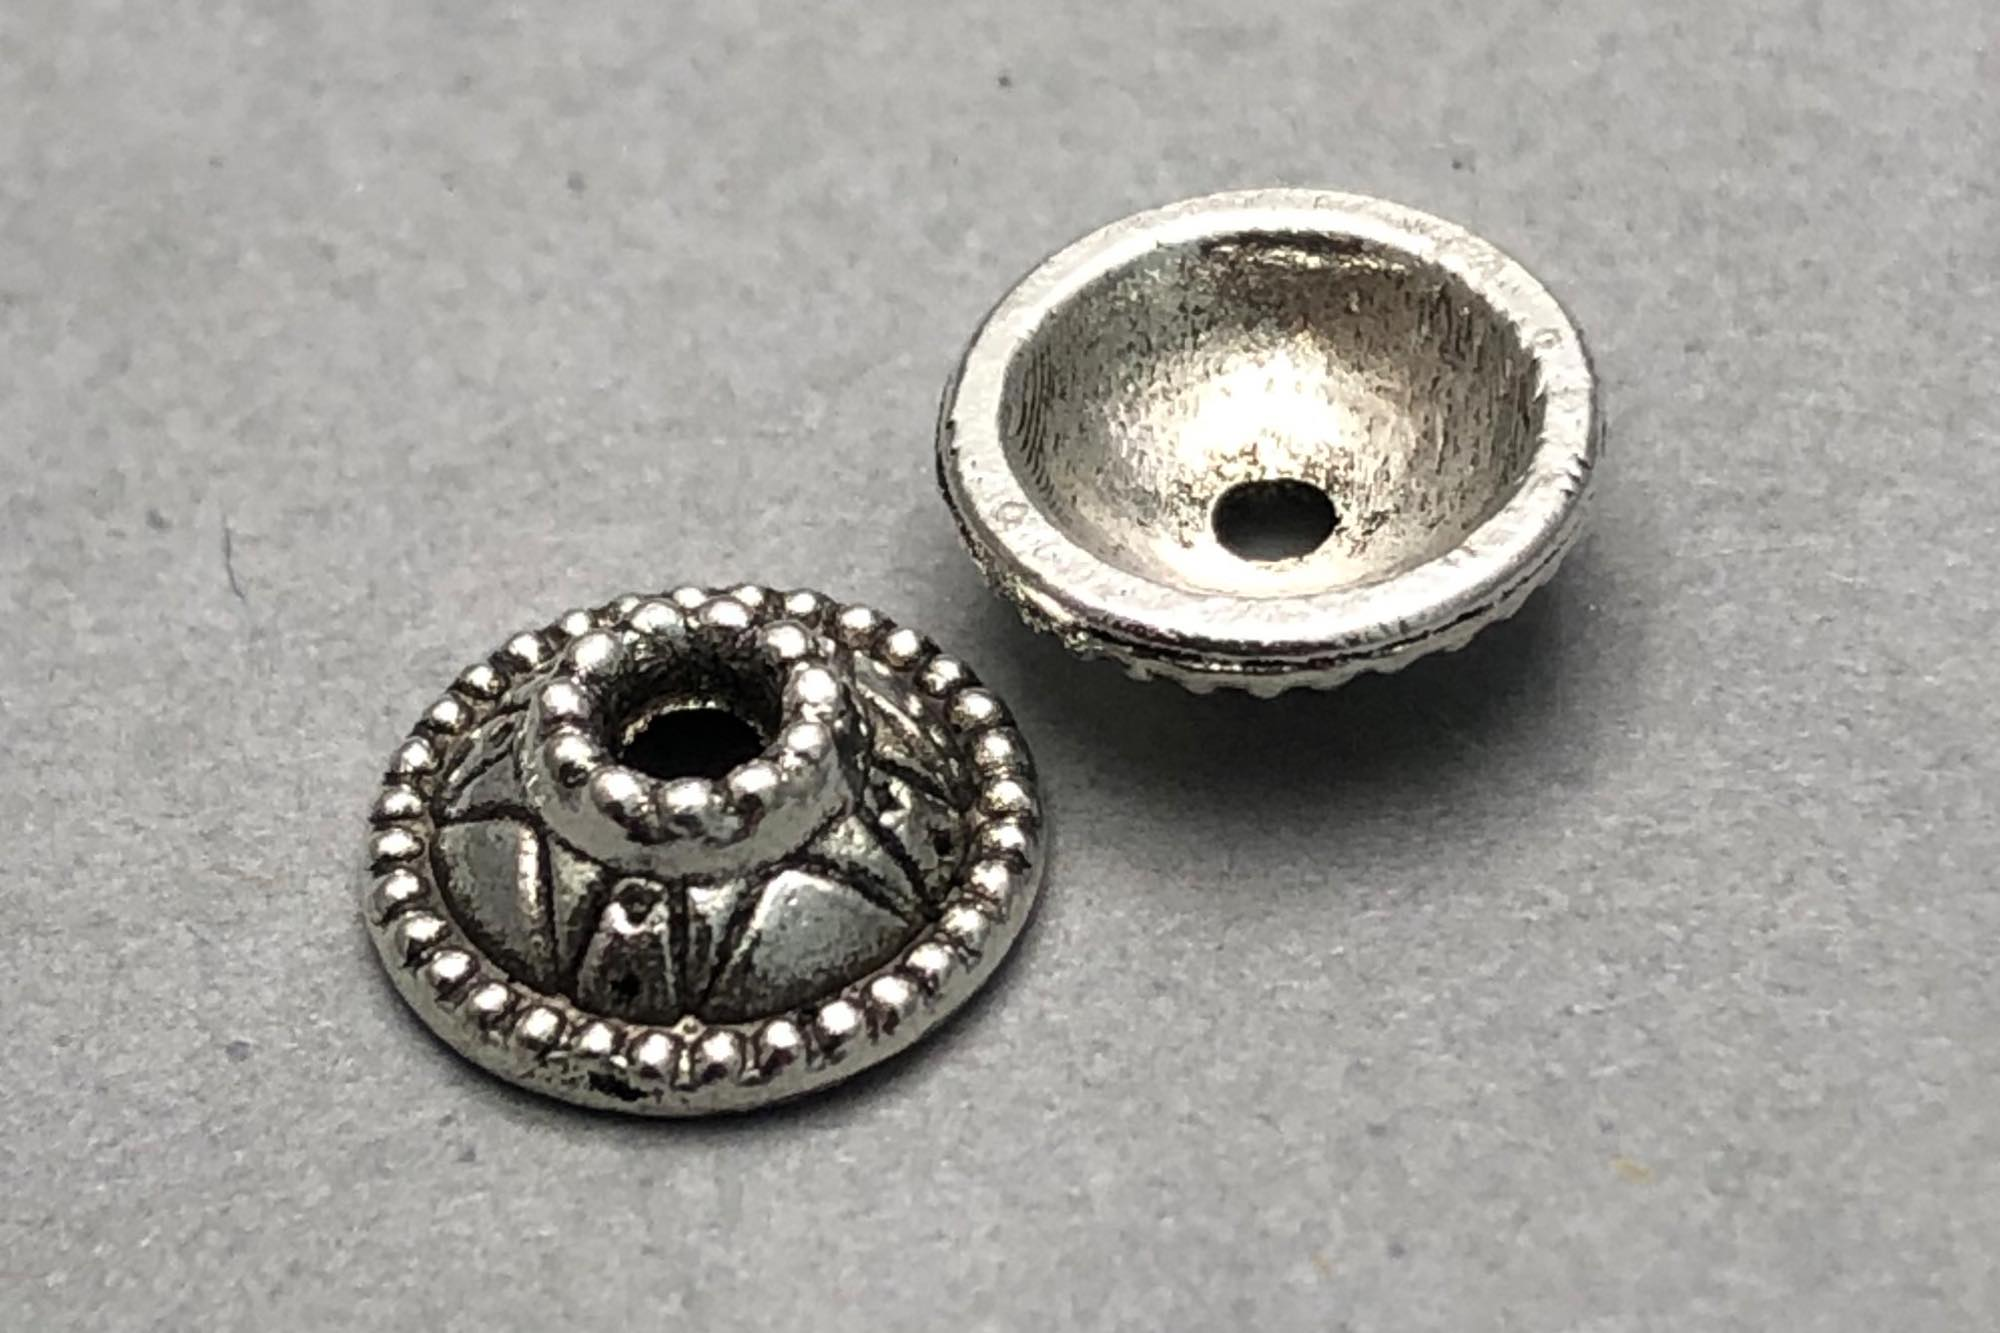 Antique Silver Plated Round Bead Cap 9x3mm